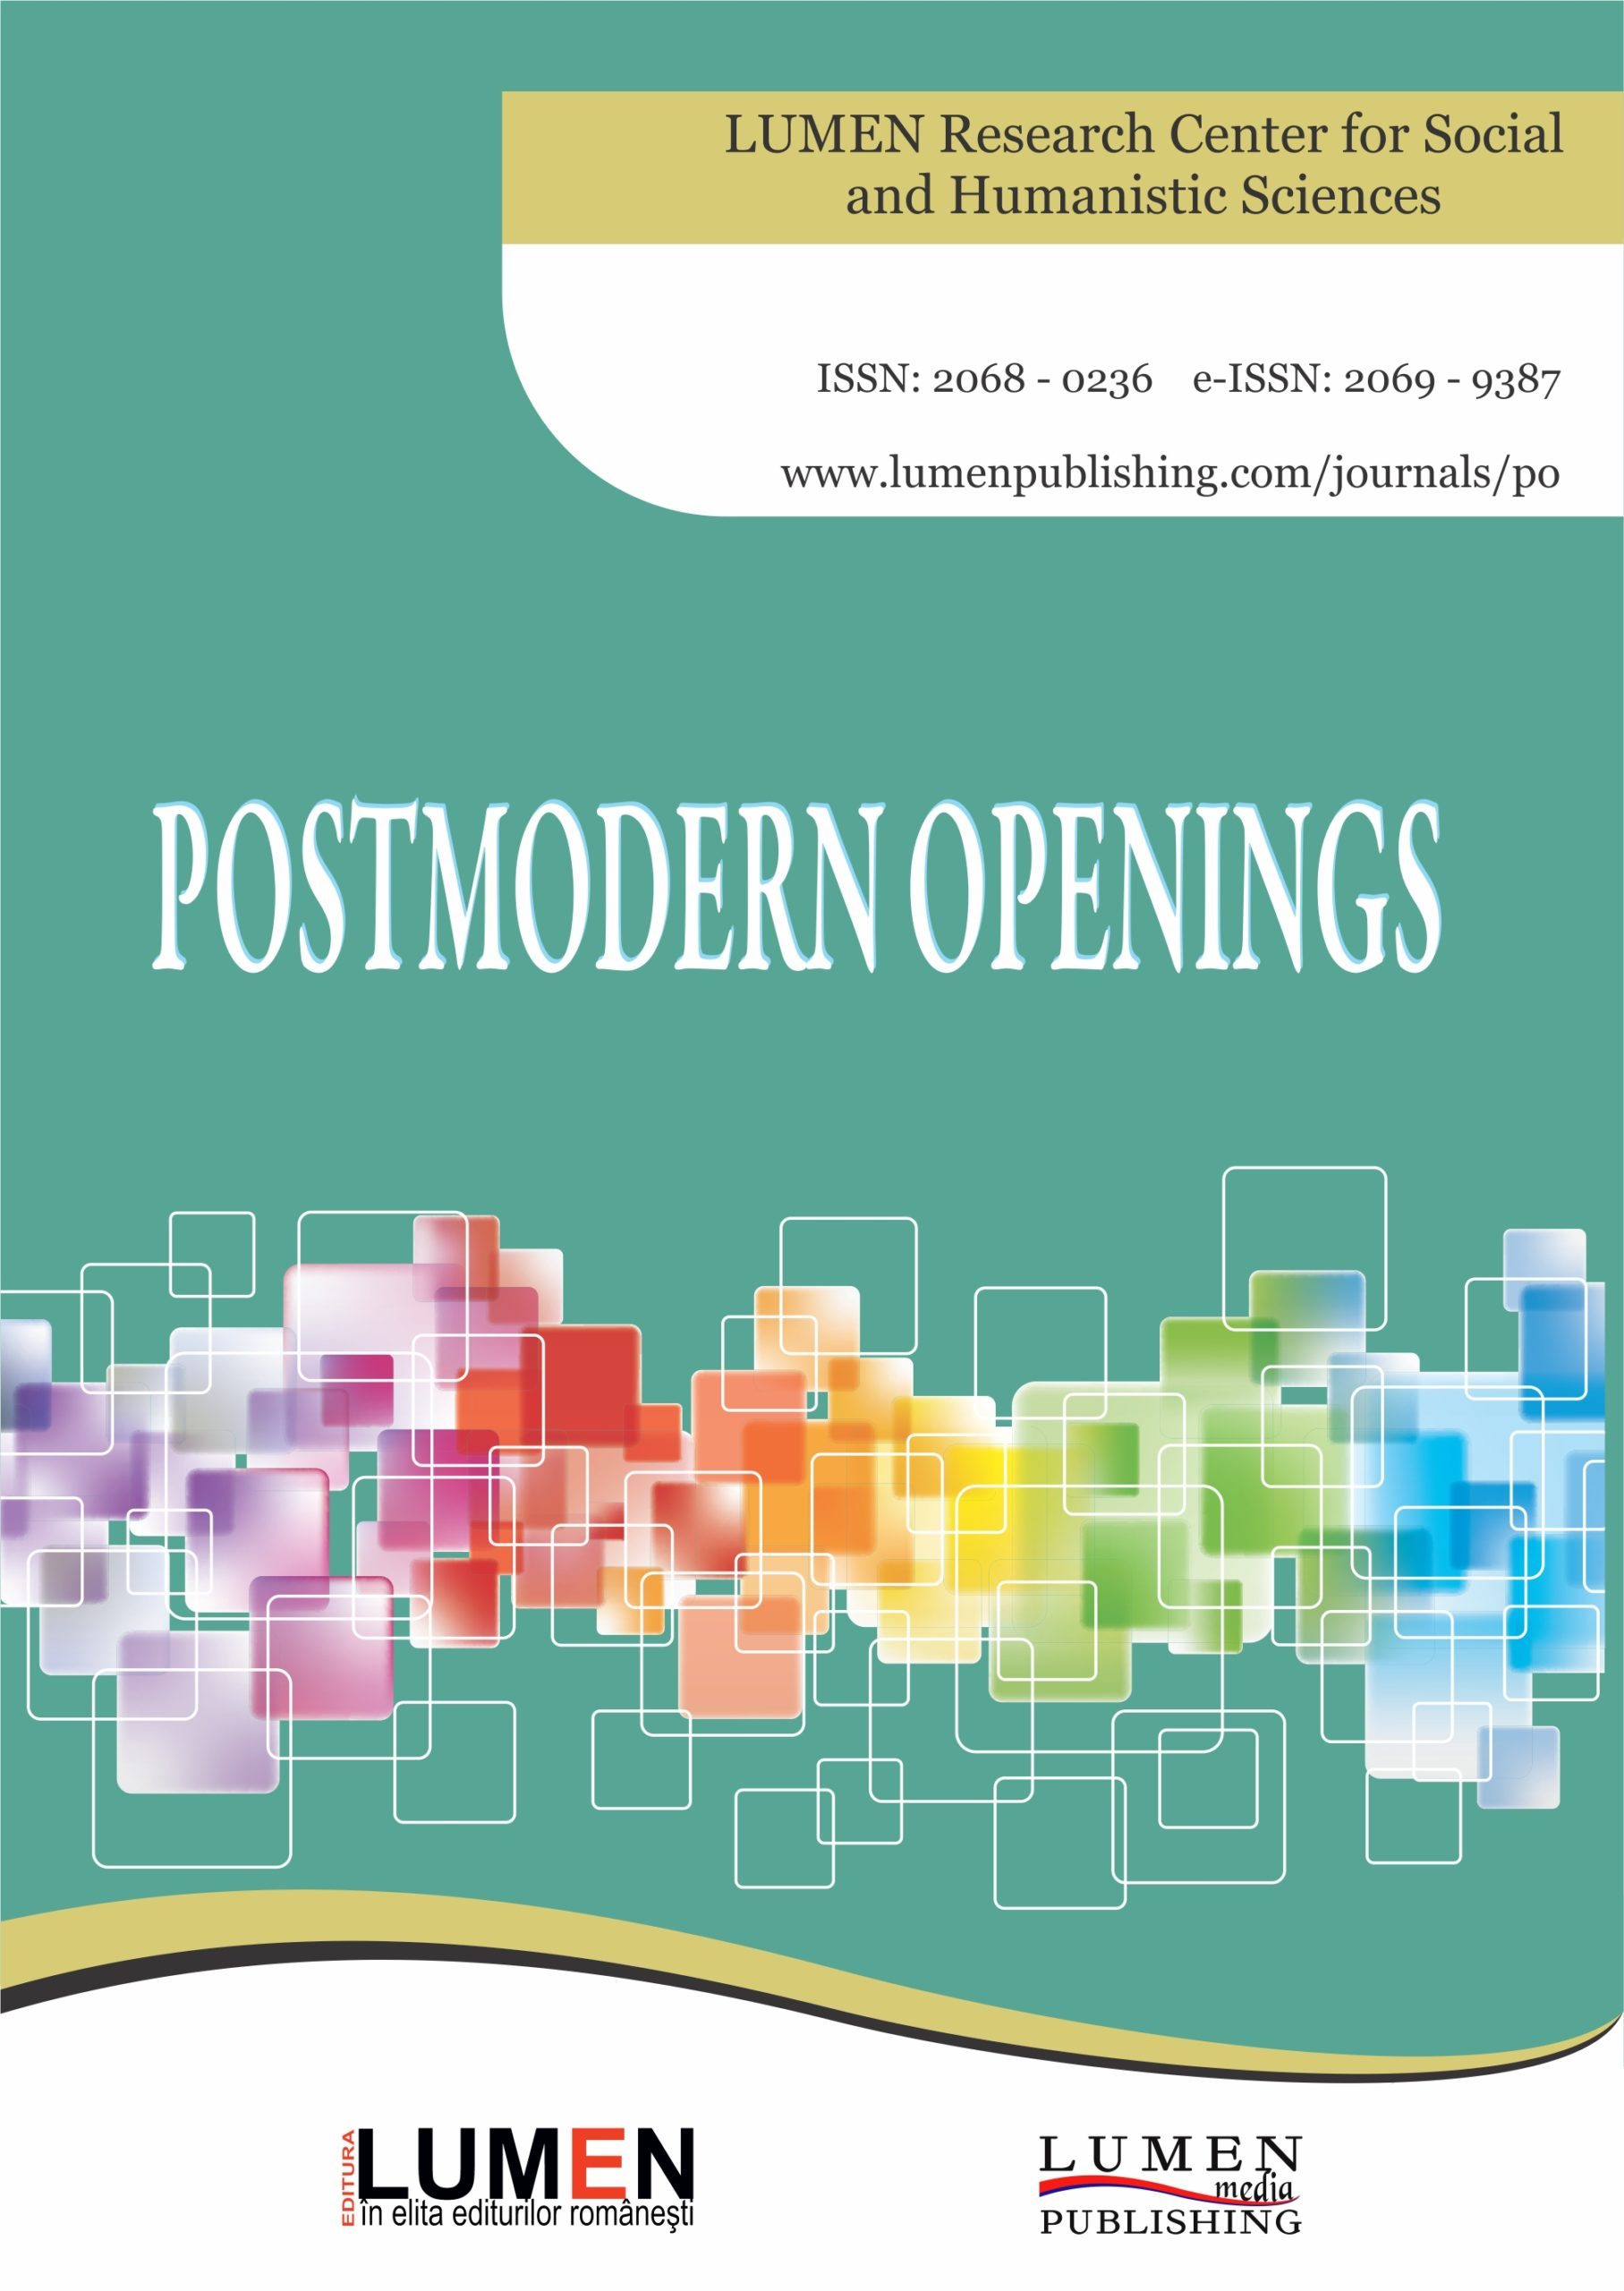 Publish your work with LUMEN Cover Postmodern Openings JOURNAL scaled